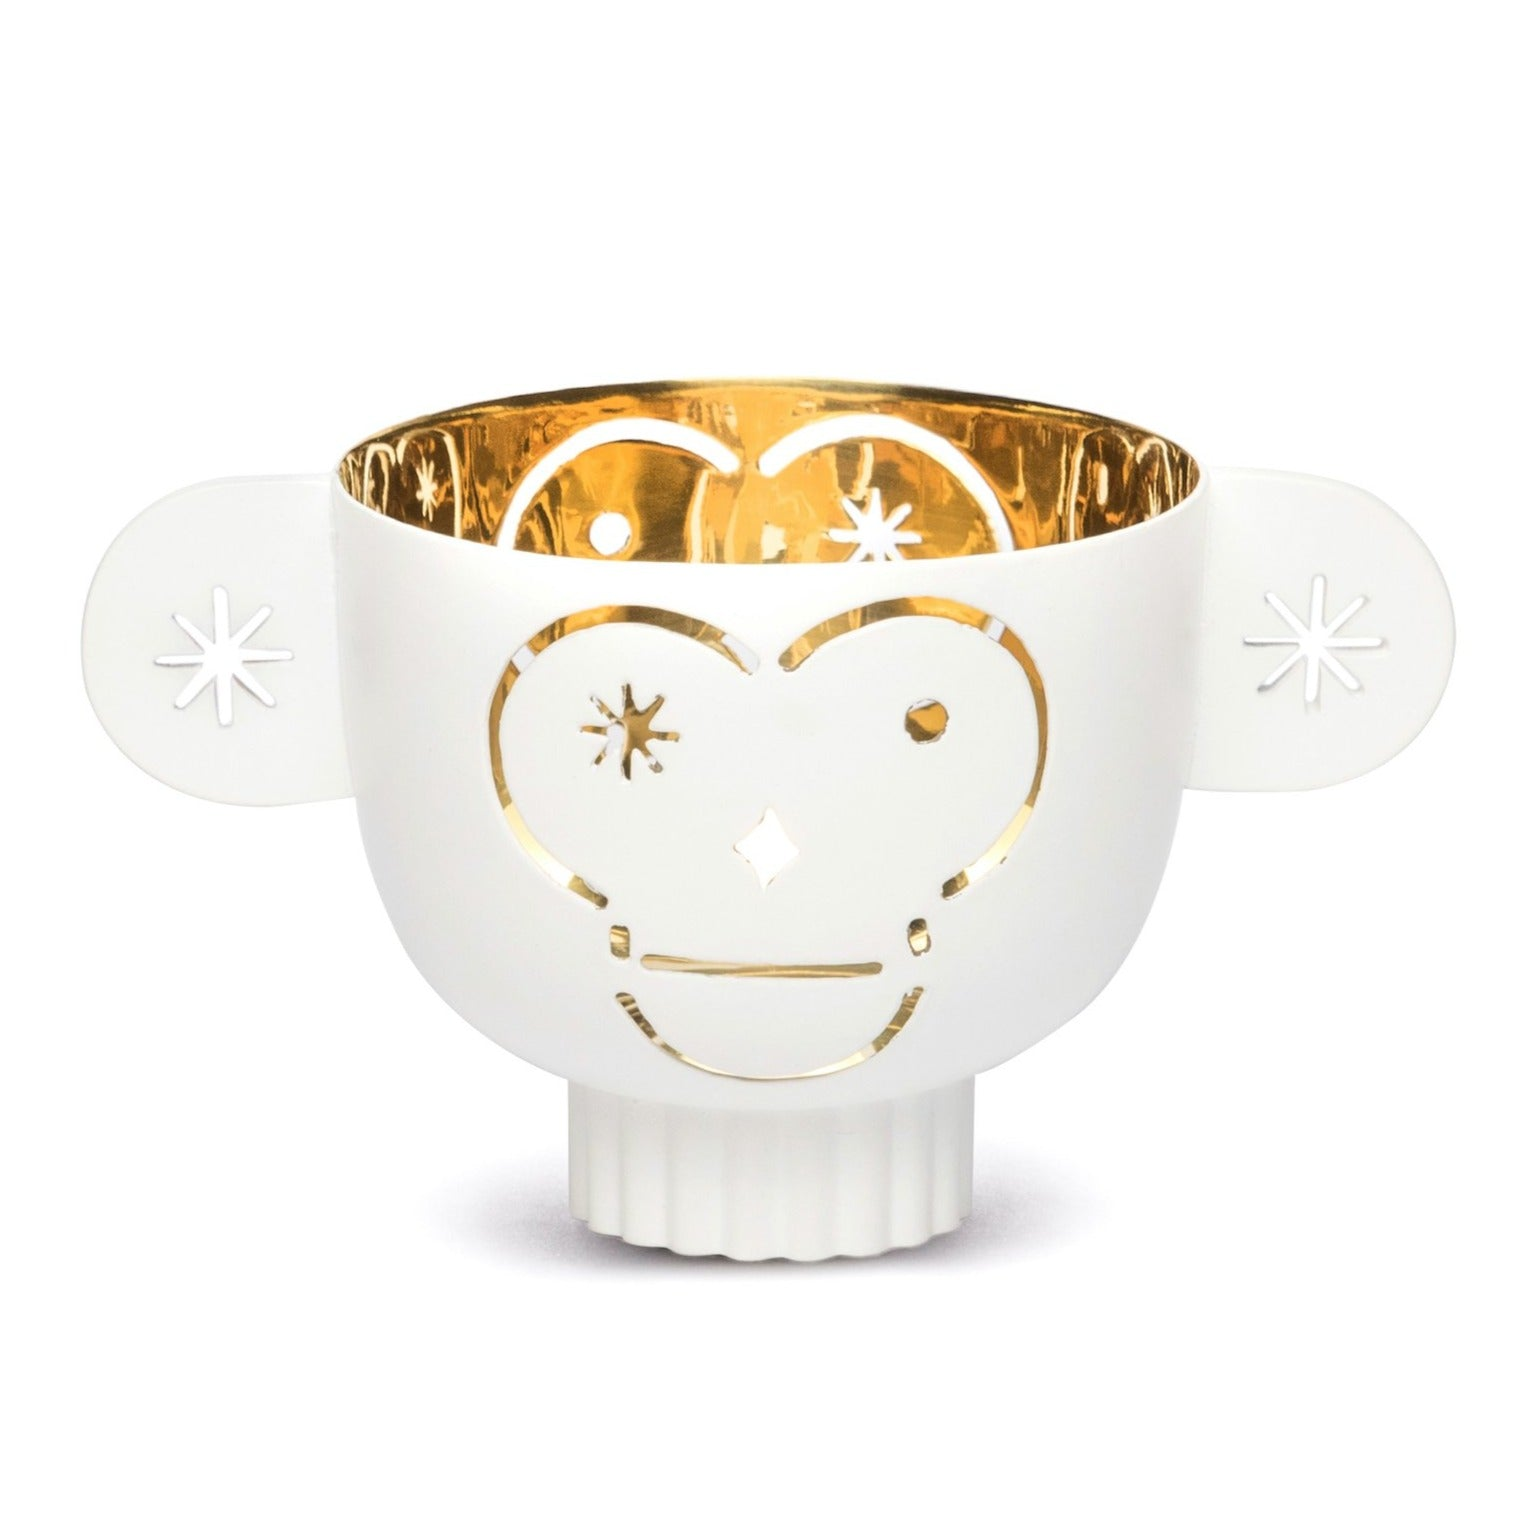 Monkos - Brass candle holder white outside